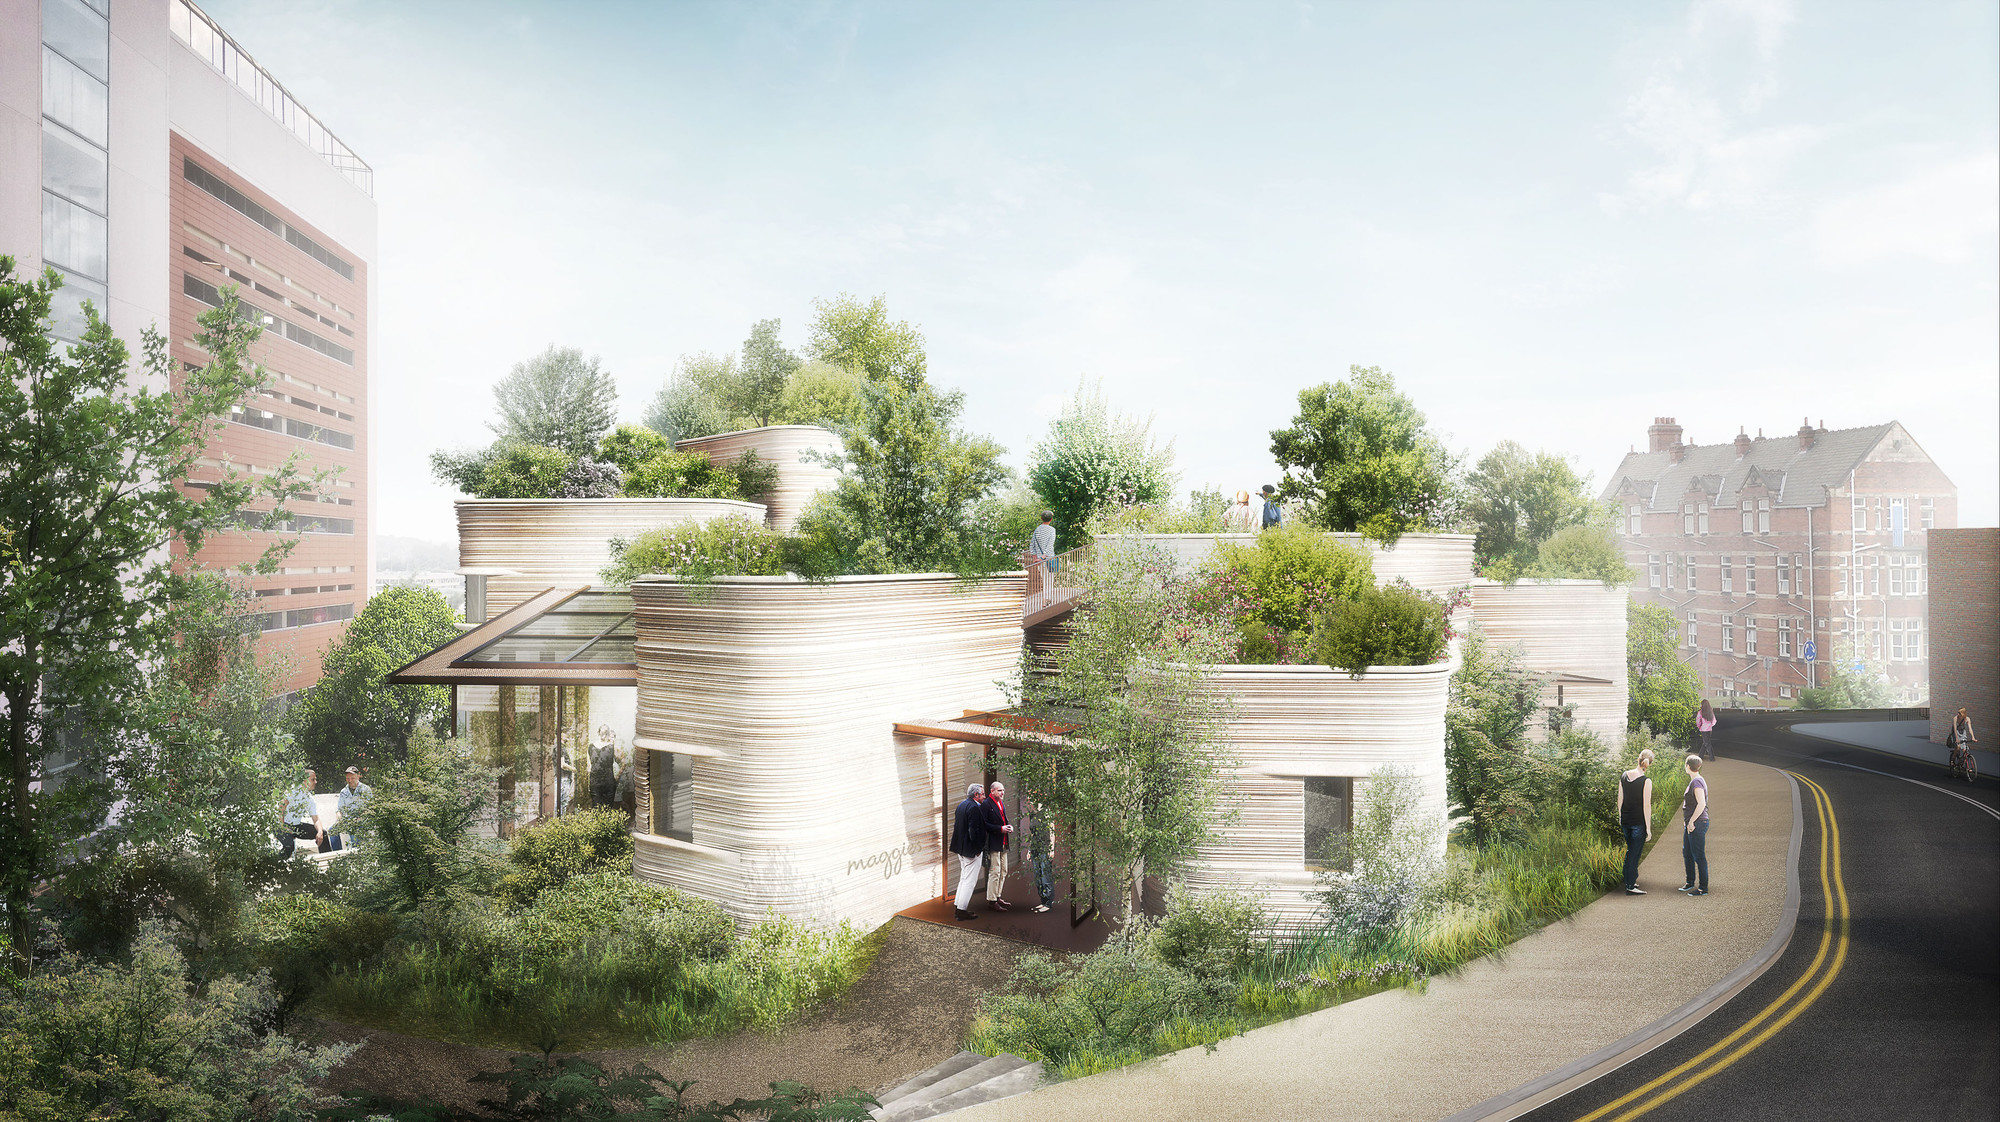 Thomas Heatherwick Unveils Design for Maggie's Centre in Leeds, © Heatherwick Studio